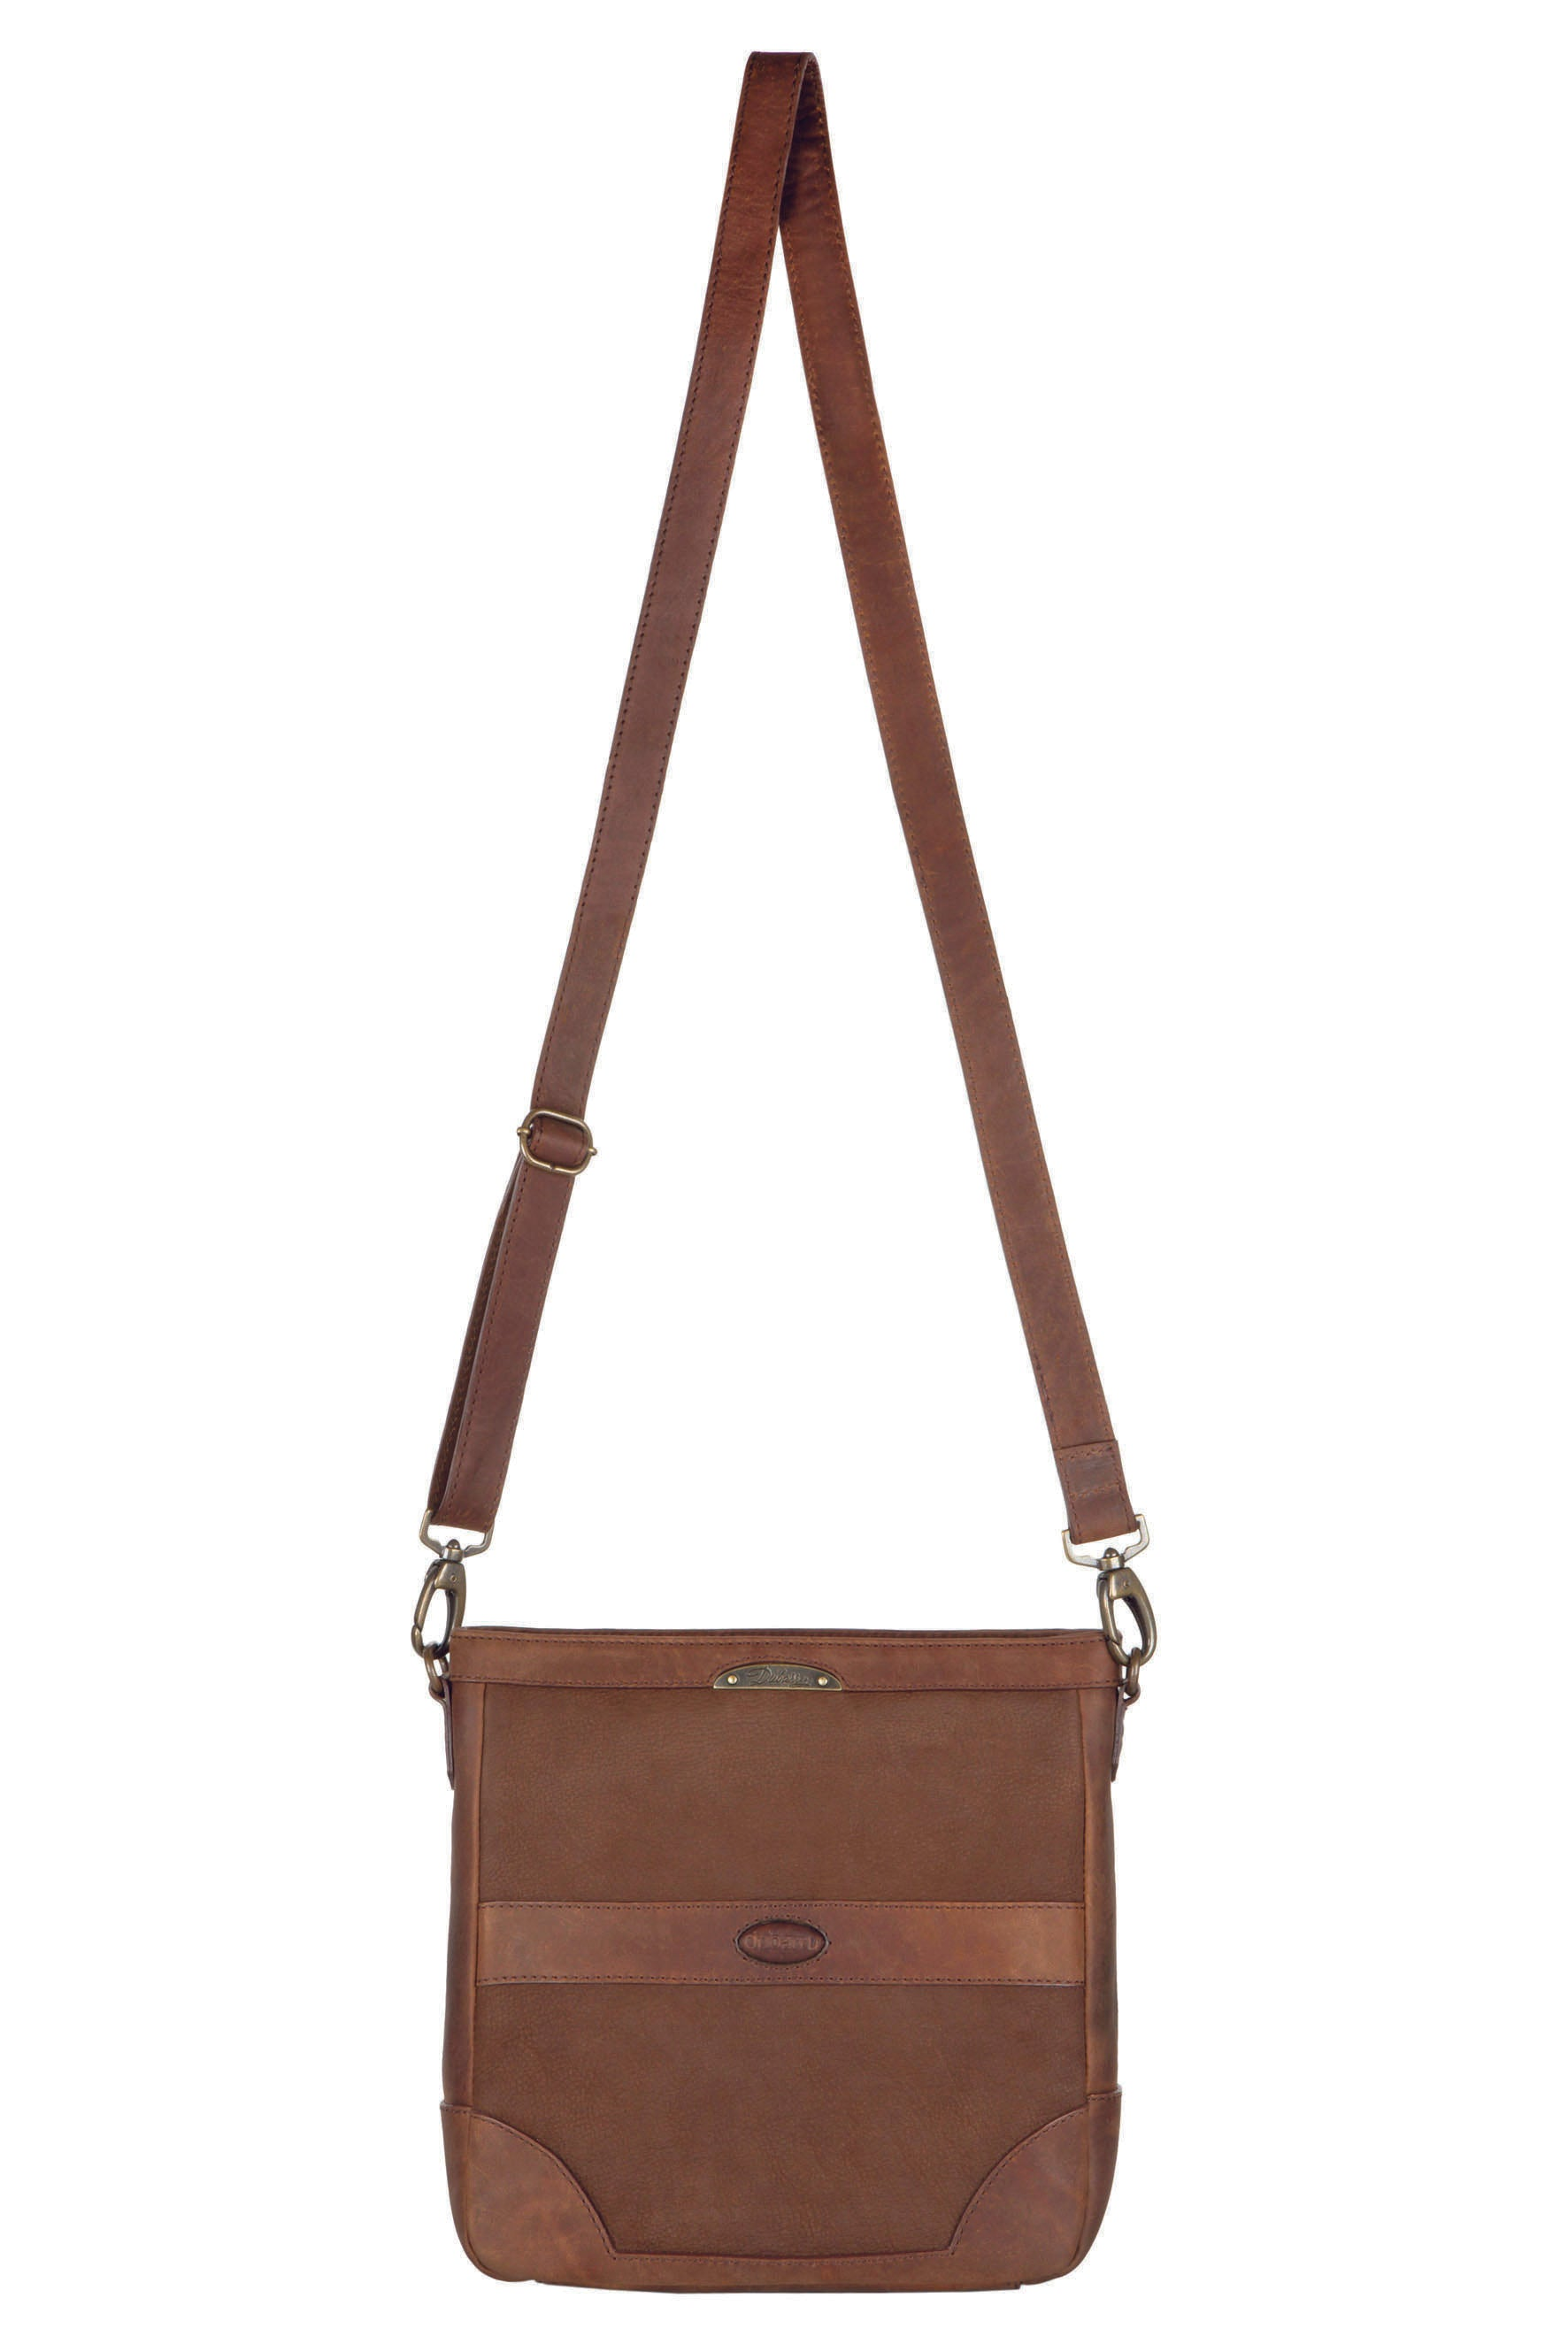 Dubarry Ardmore Messenger Leather Bag for Ladies in Walnut